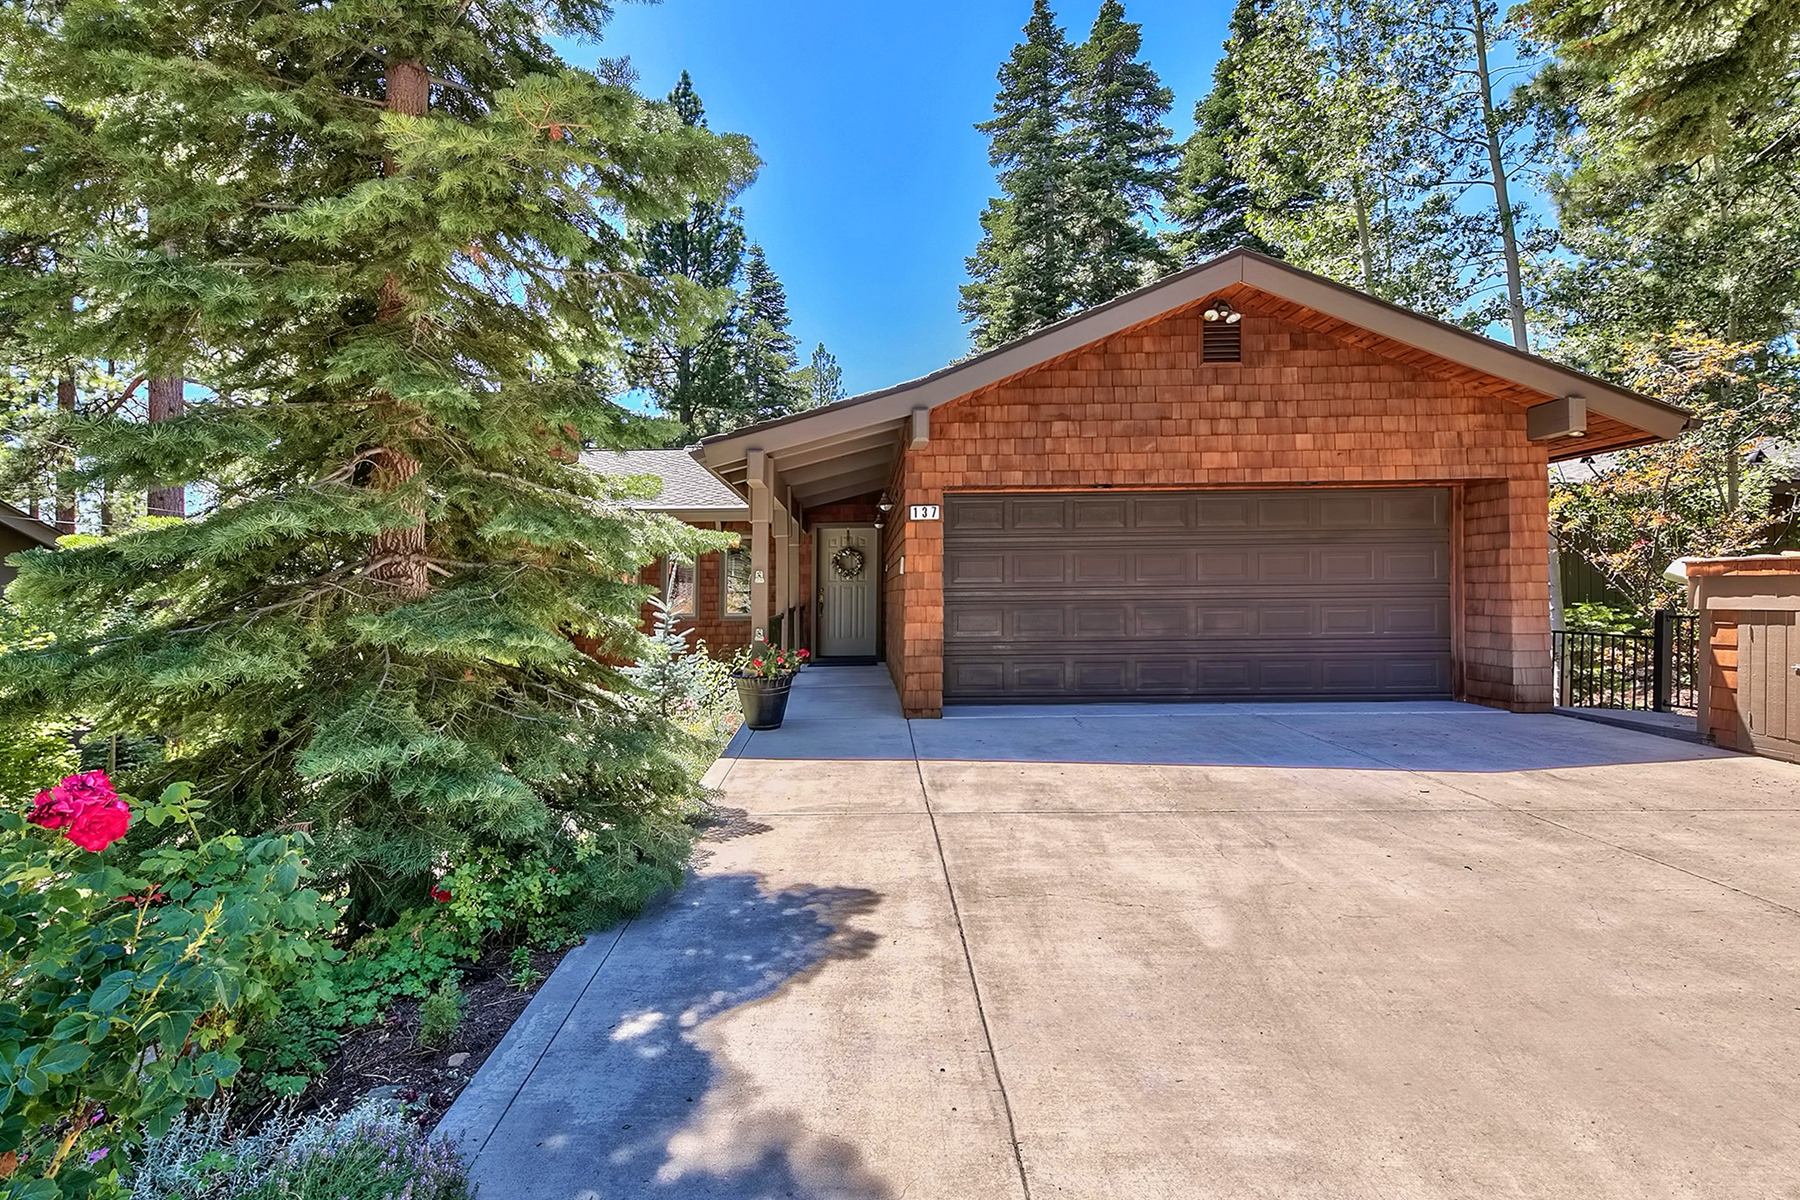 Single Family Home for Active at 137 Marlette Drive, Tahoe City, CA 137 Marlette Drive Tahoe City, California 96145 United States